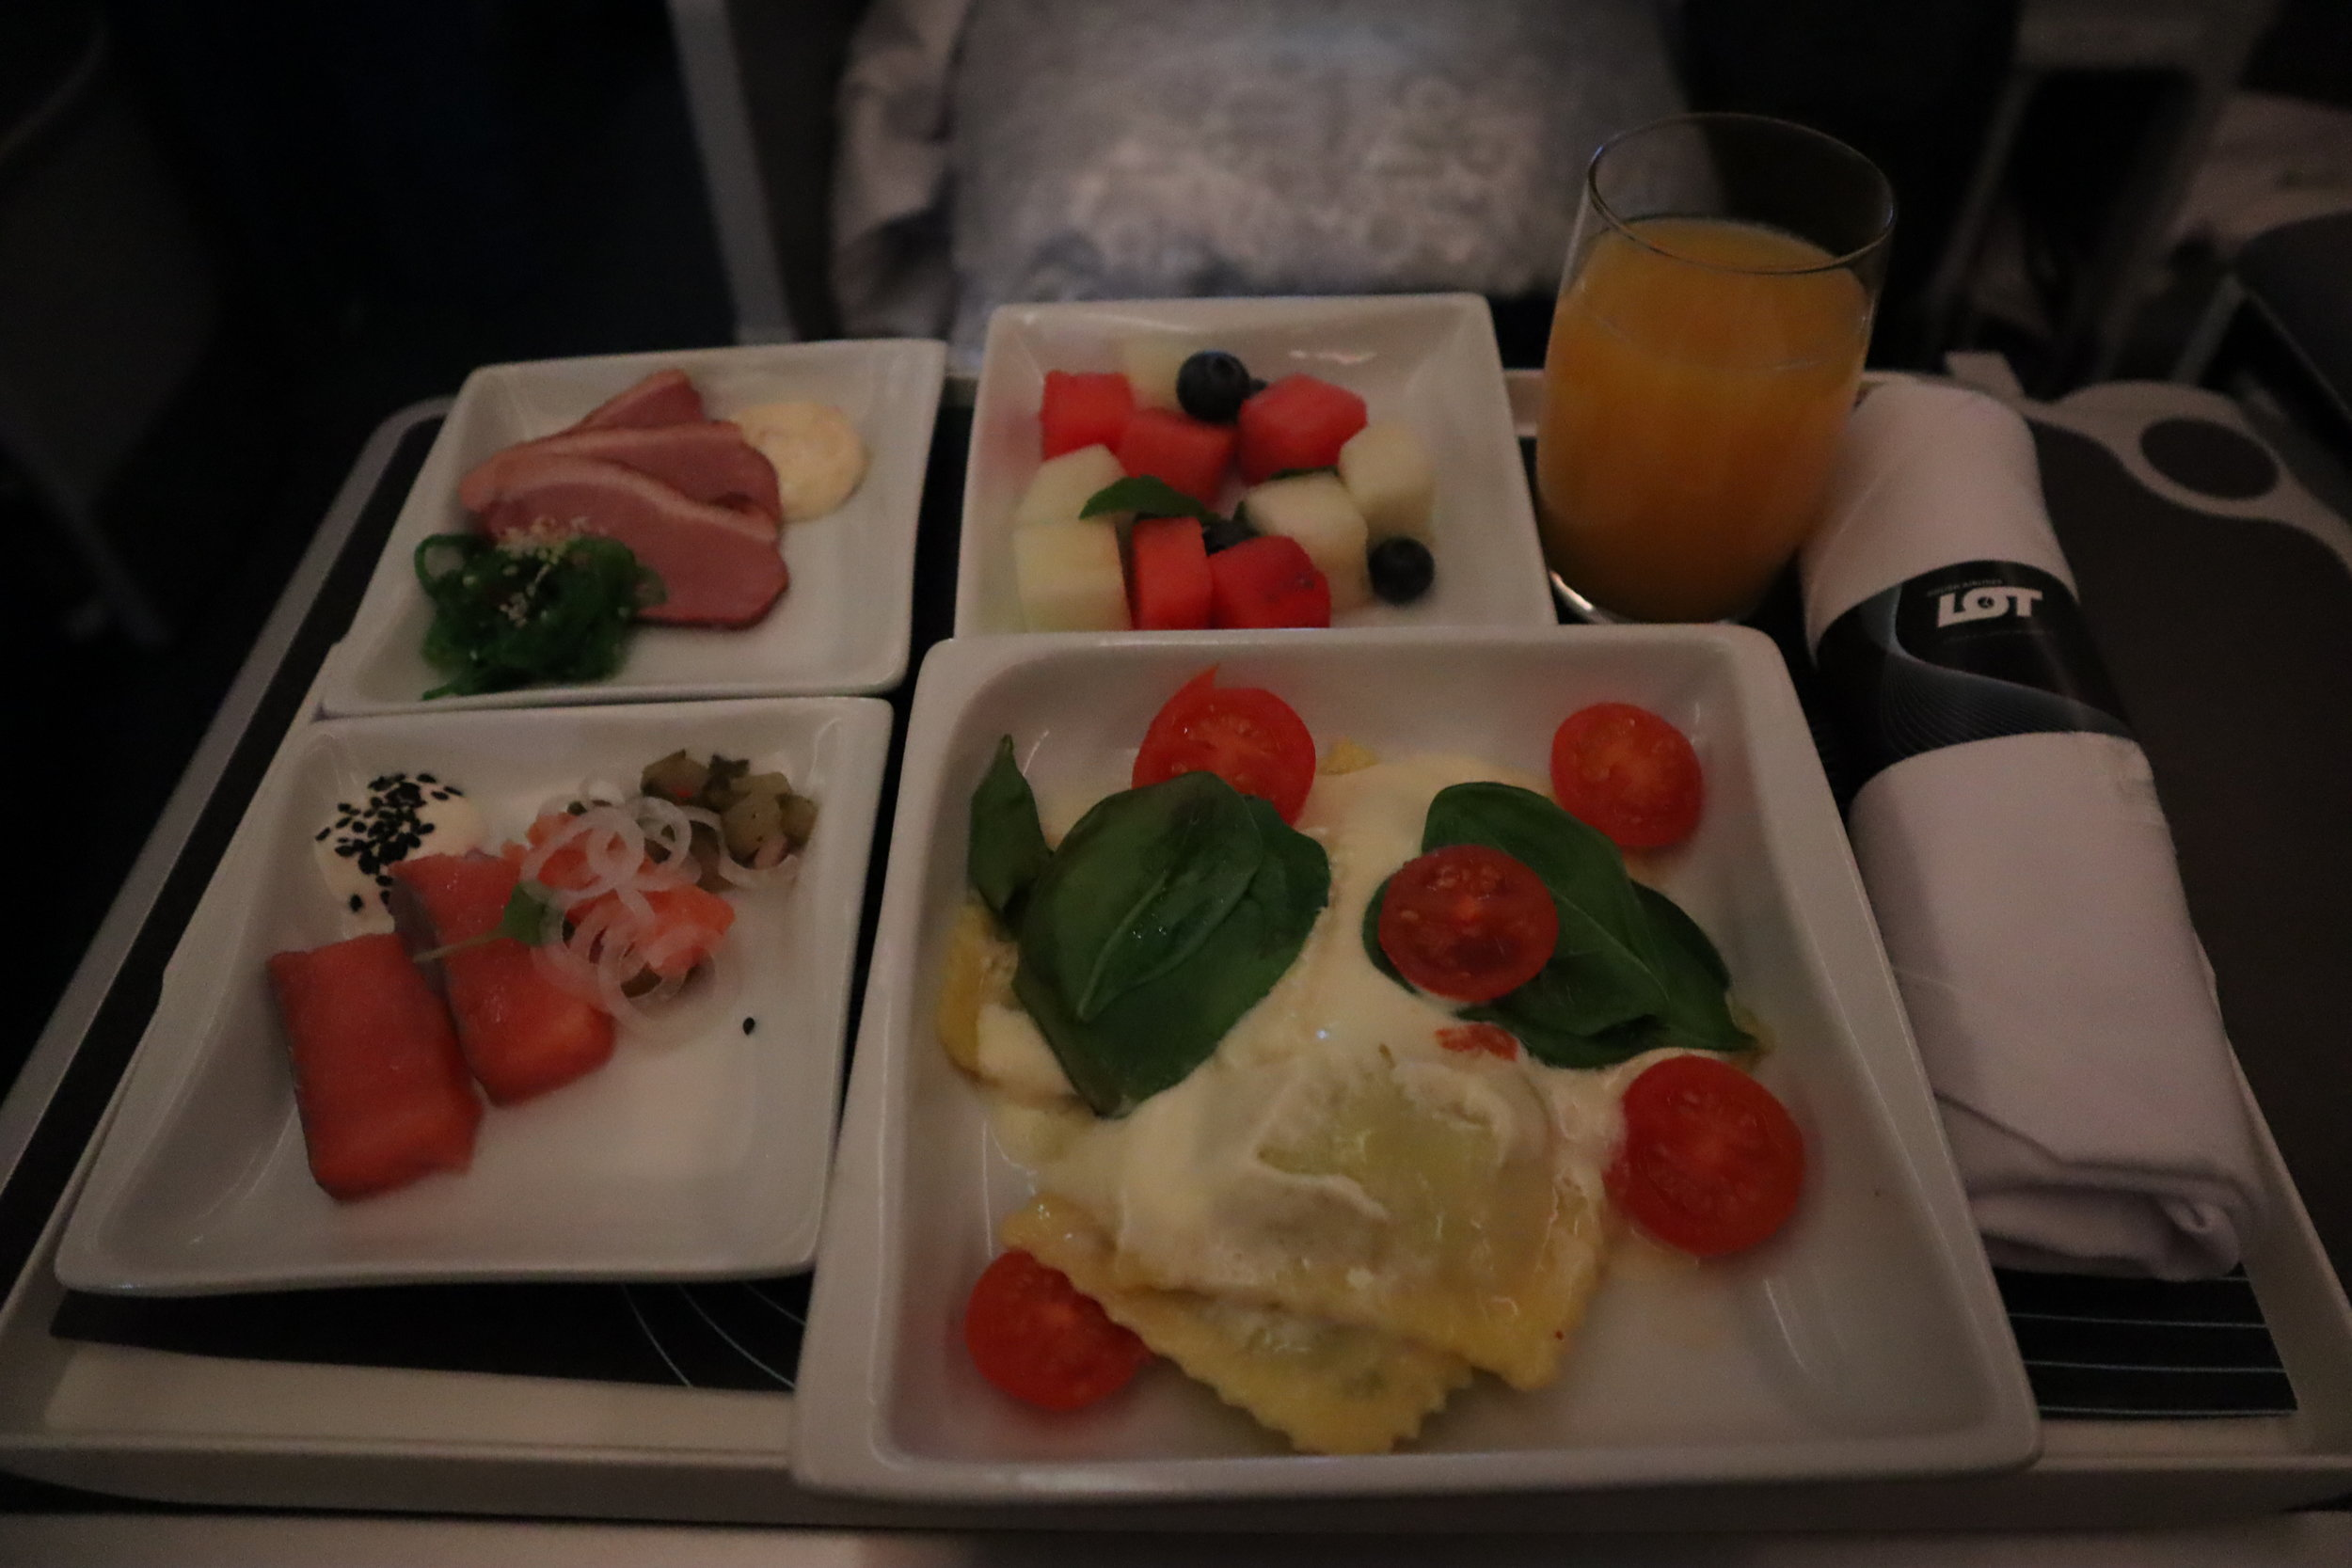 LOT Polish Airlines business class – Pre-landing meal